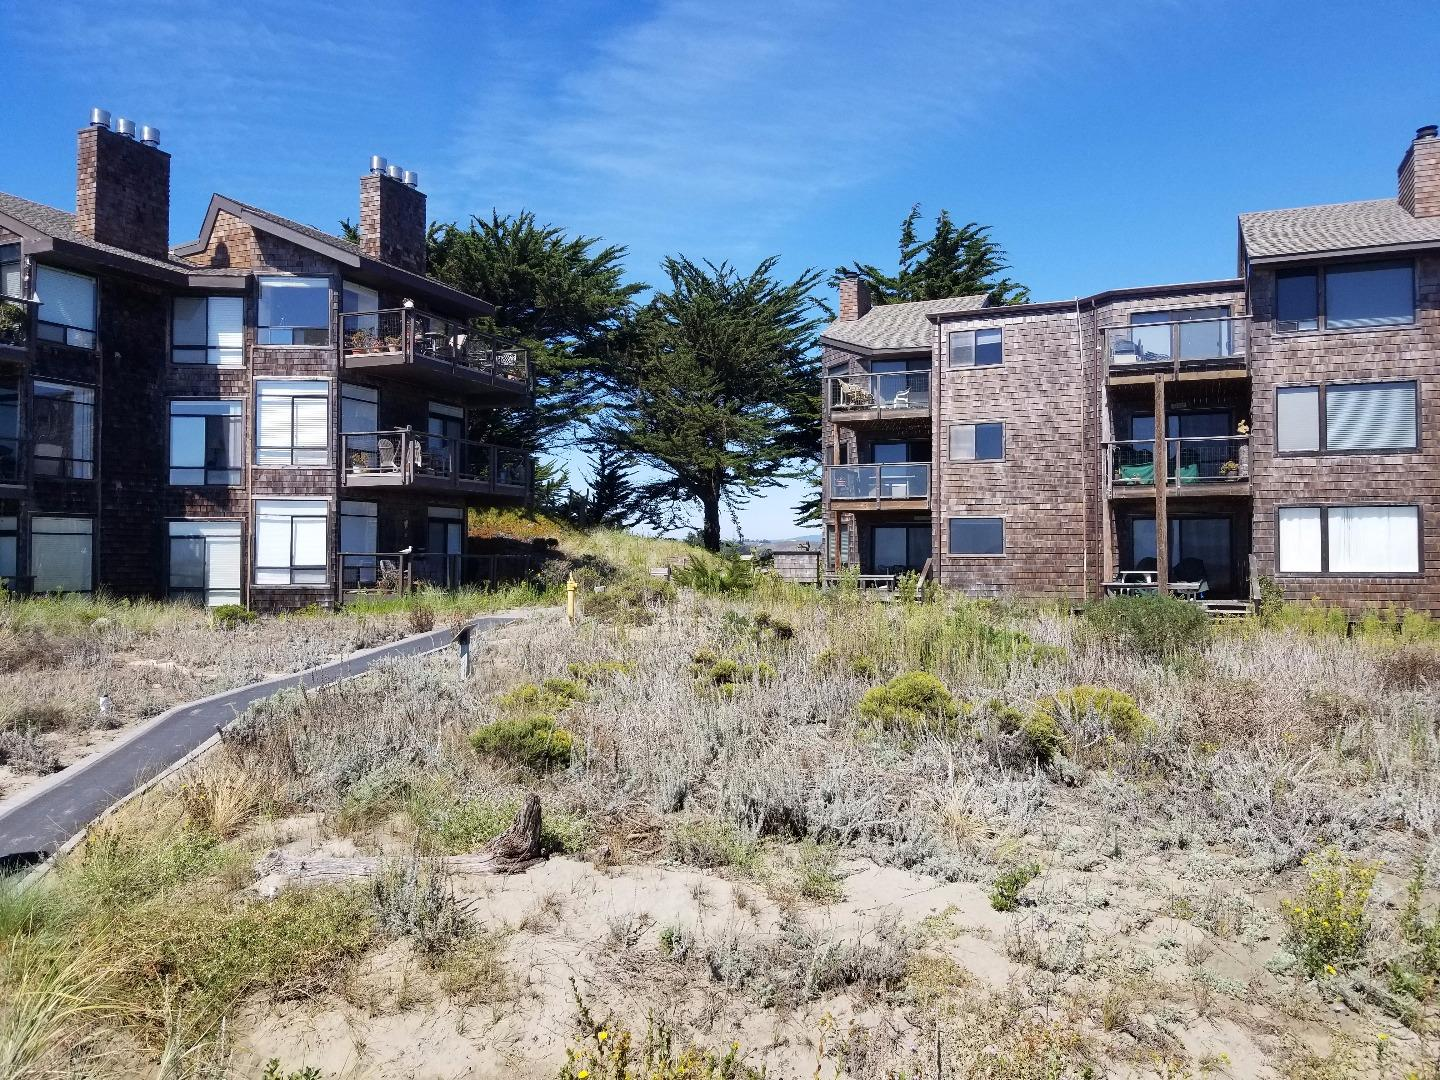 Additional photo for property listing at 73 Pelican Point 73 Pelican Point La Selva Beach, Kalifornien 95076 Vereinigte Staaten